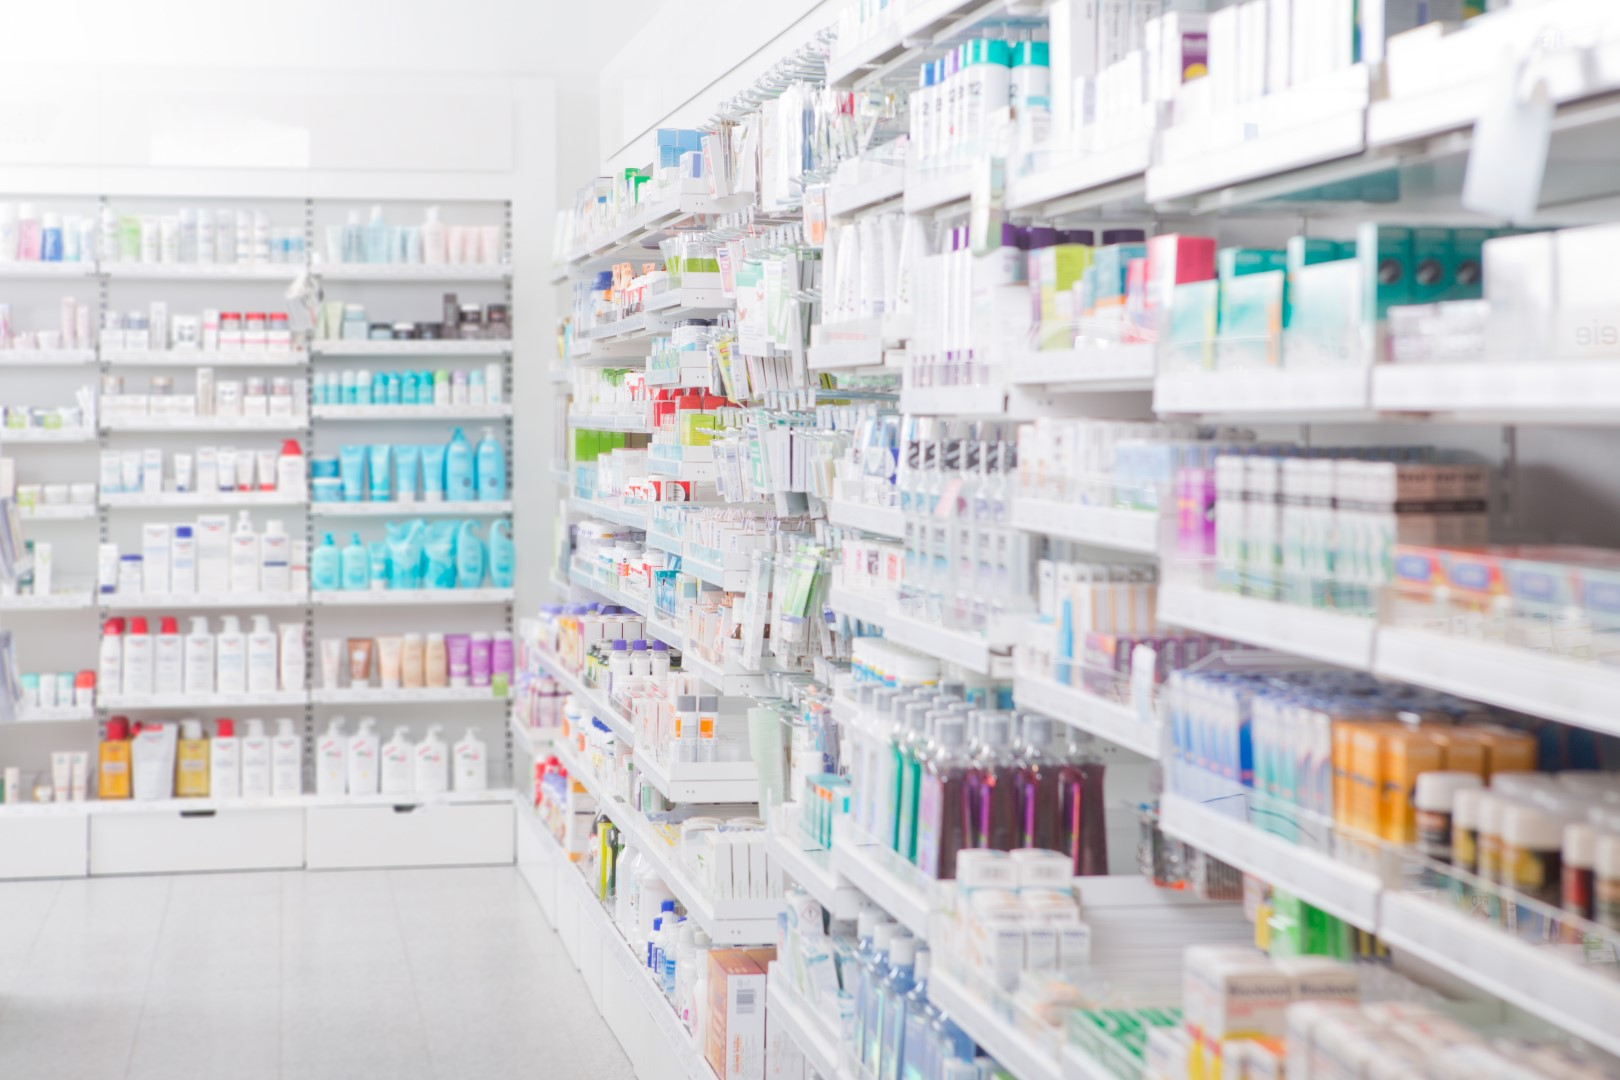 CUBAN PHARMACEUTICAL IMPORTS TO U.S. COULD LEAD TO LOWER DRUG PRICES